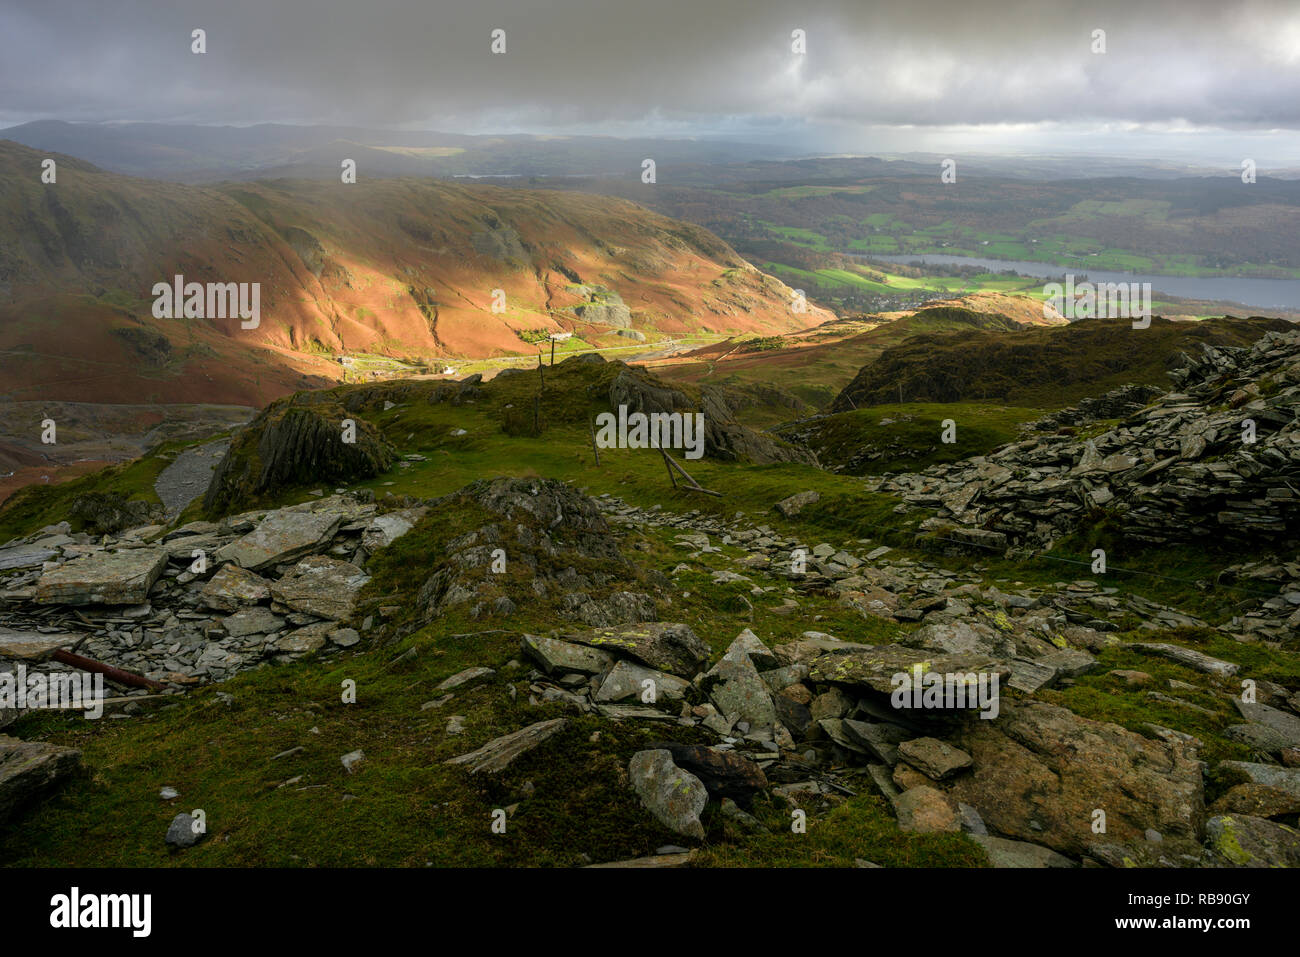 Saddlestone Quarry on the flank of The Old Man of Coniston with the Coppermines Valley beyond in the Lake District National Park, Cumbria, England. - Stock Image